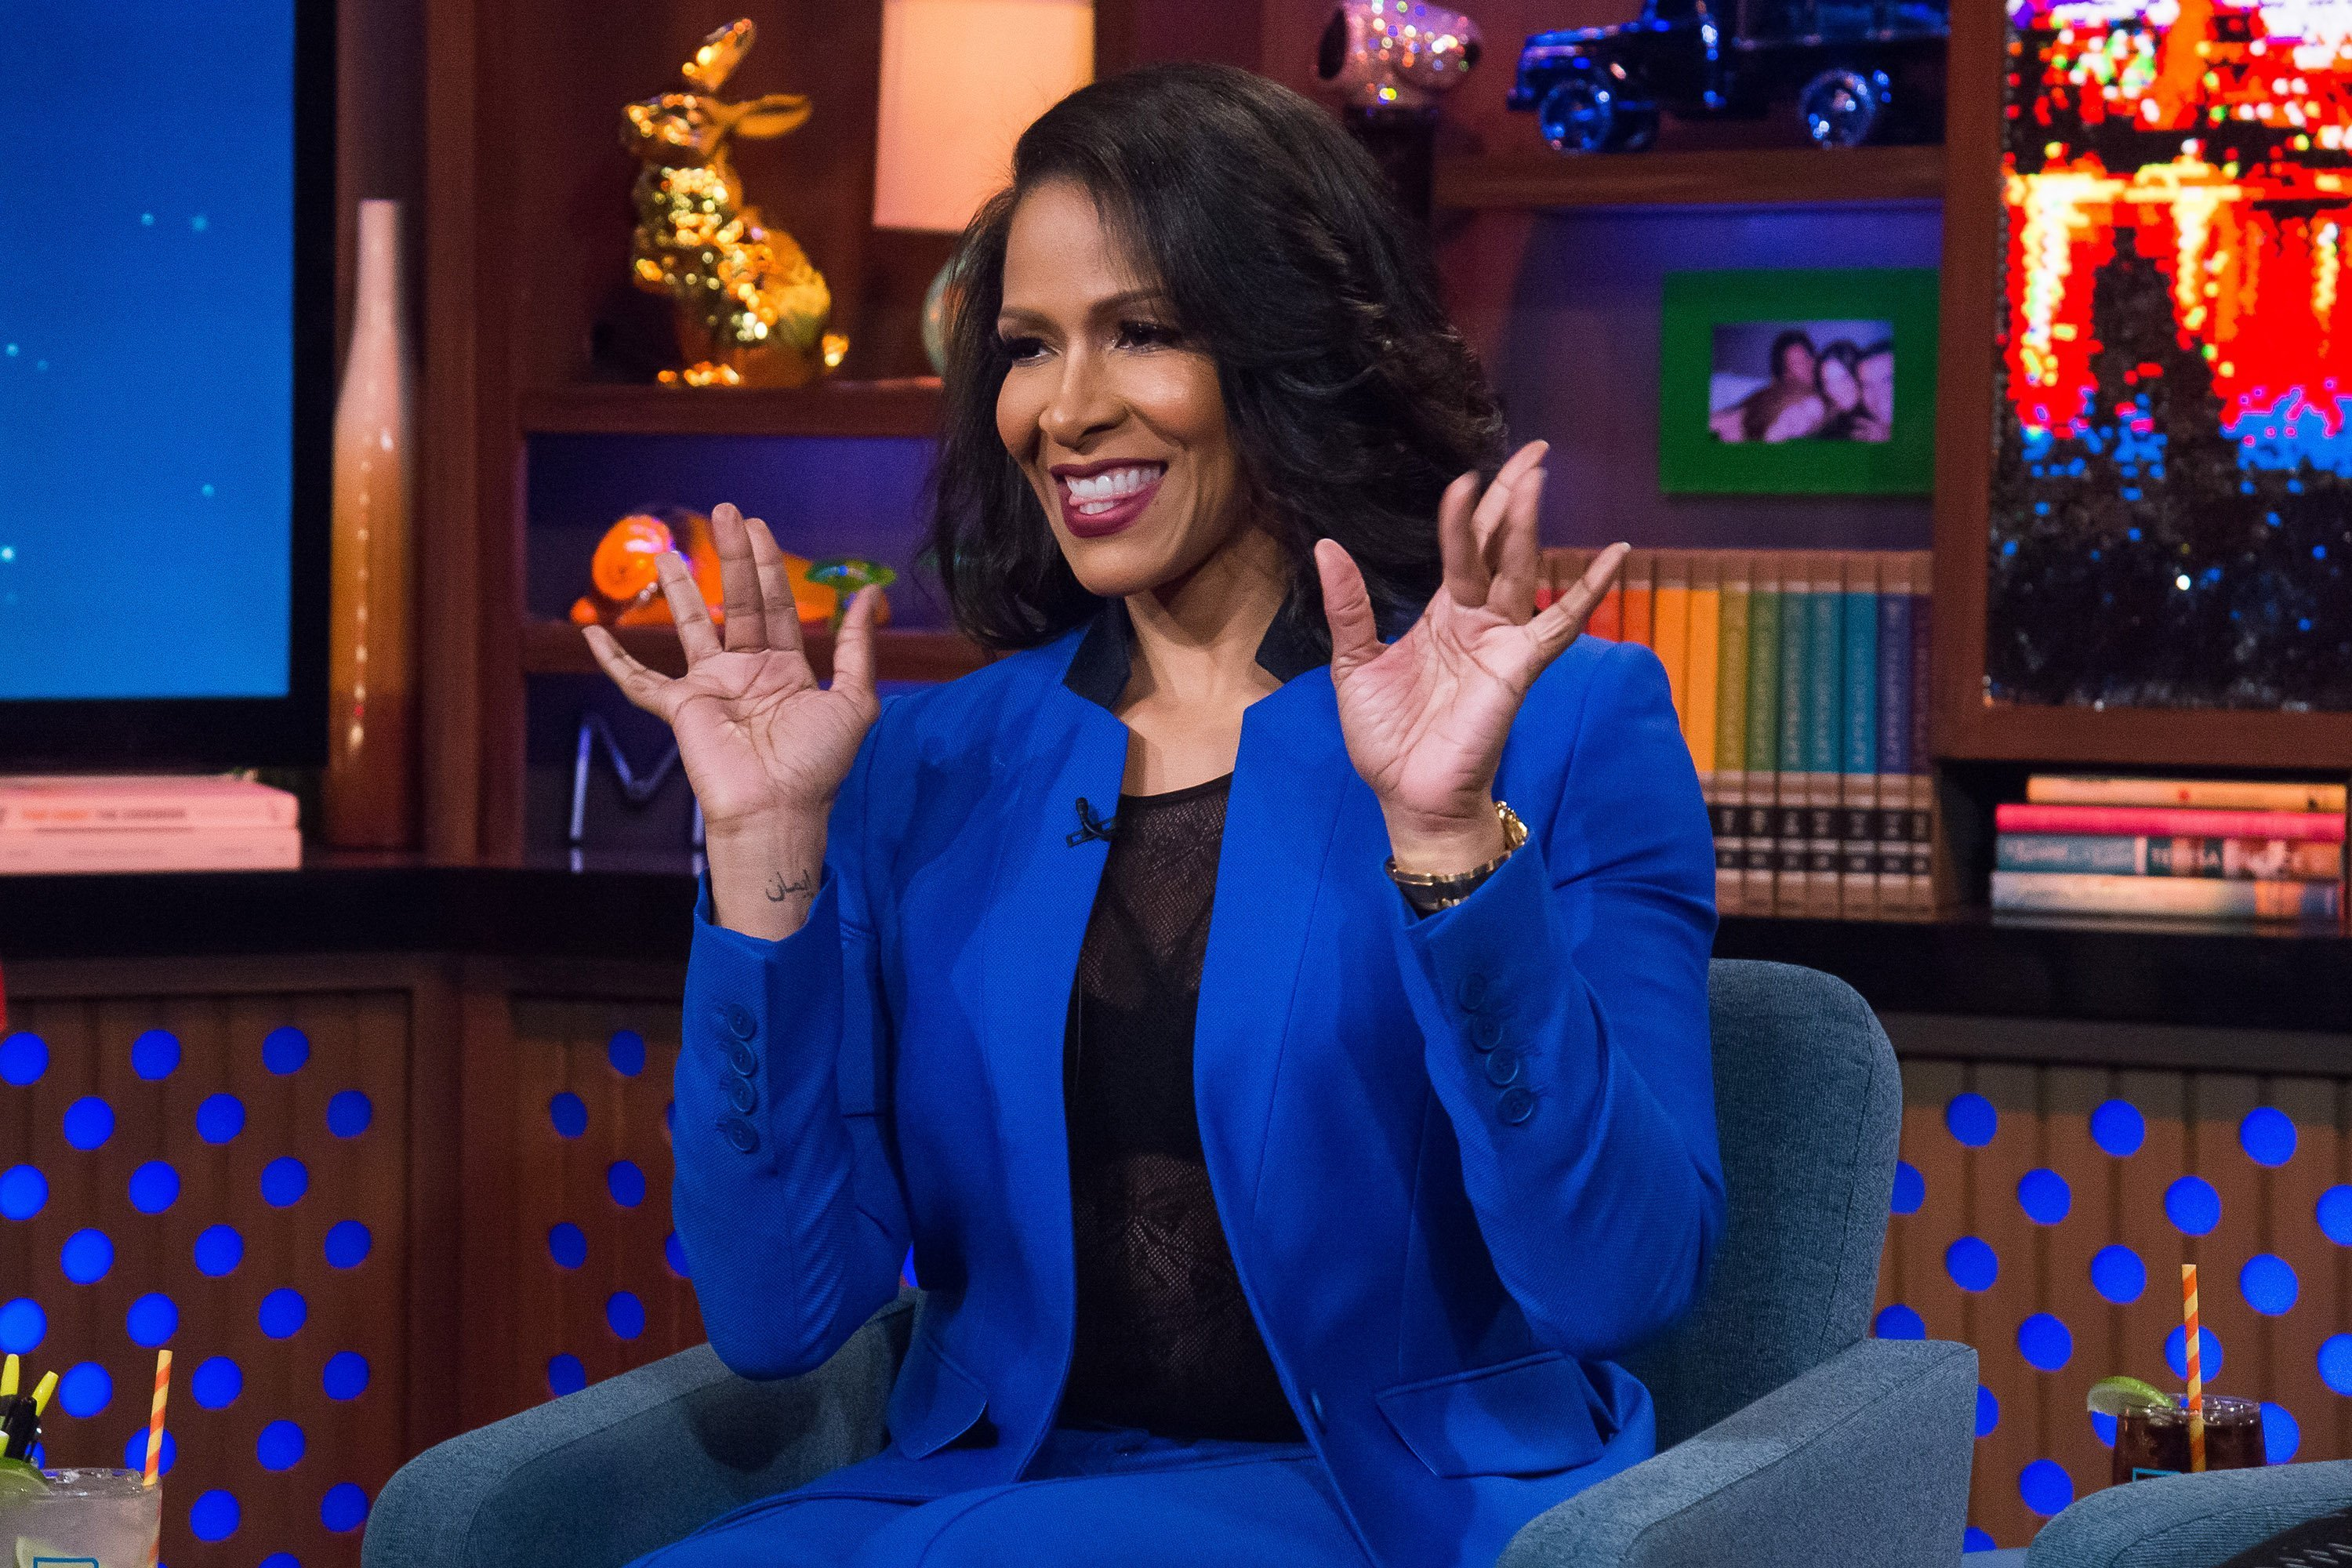 Sheree Whitfield during an appearance on WATCH WHAT HAPPENS LIVE WITH ANDY COHEN | Photo : Getty Images